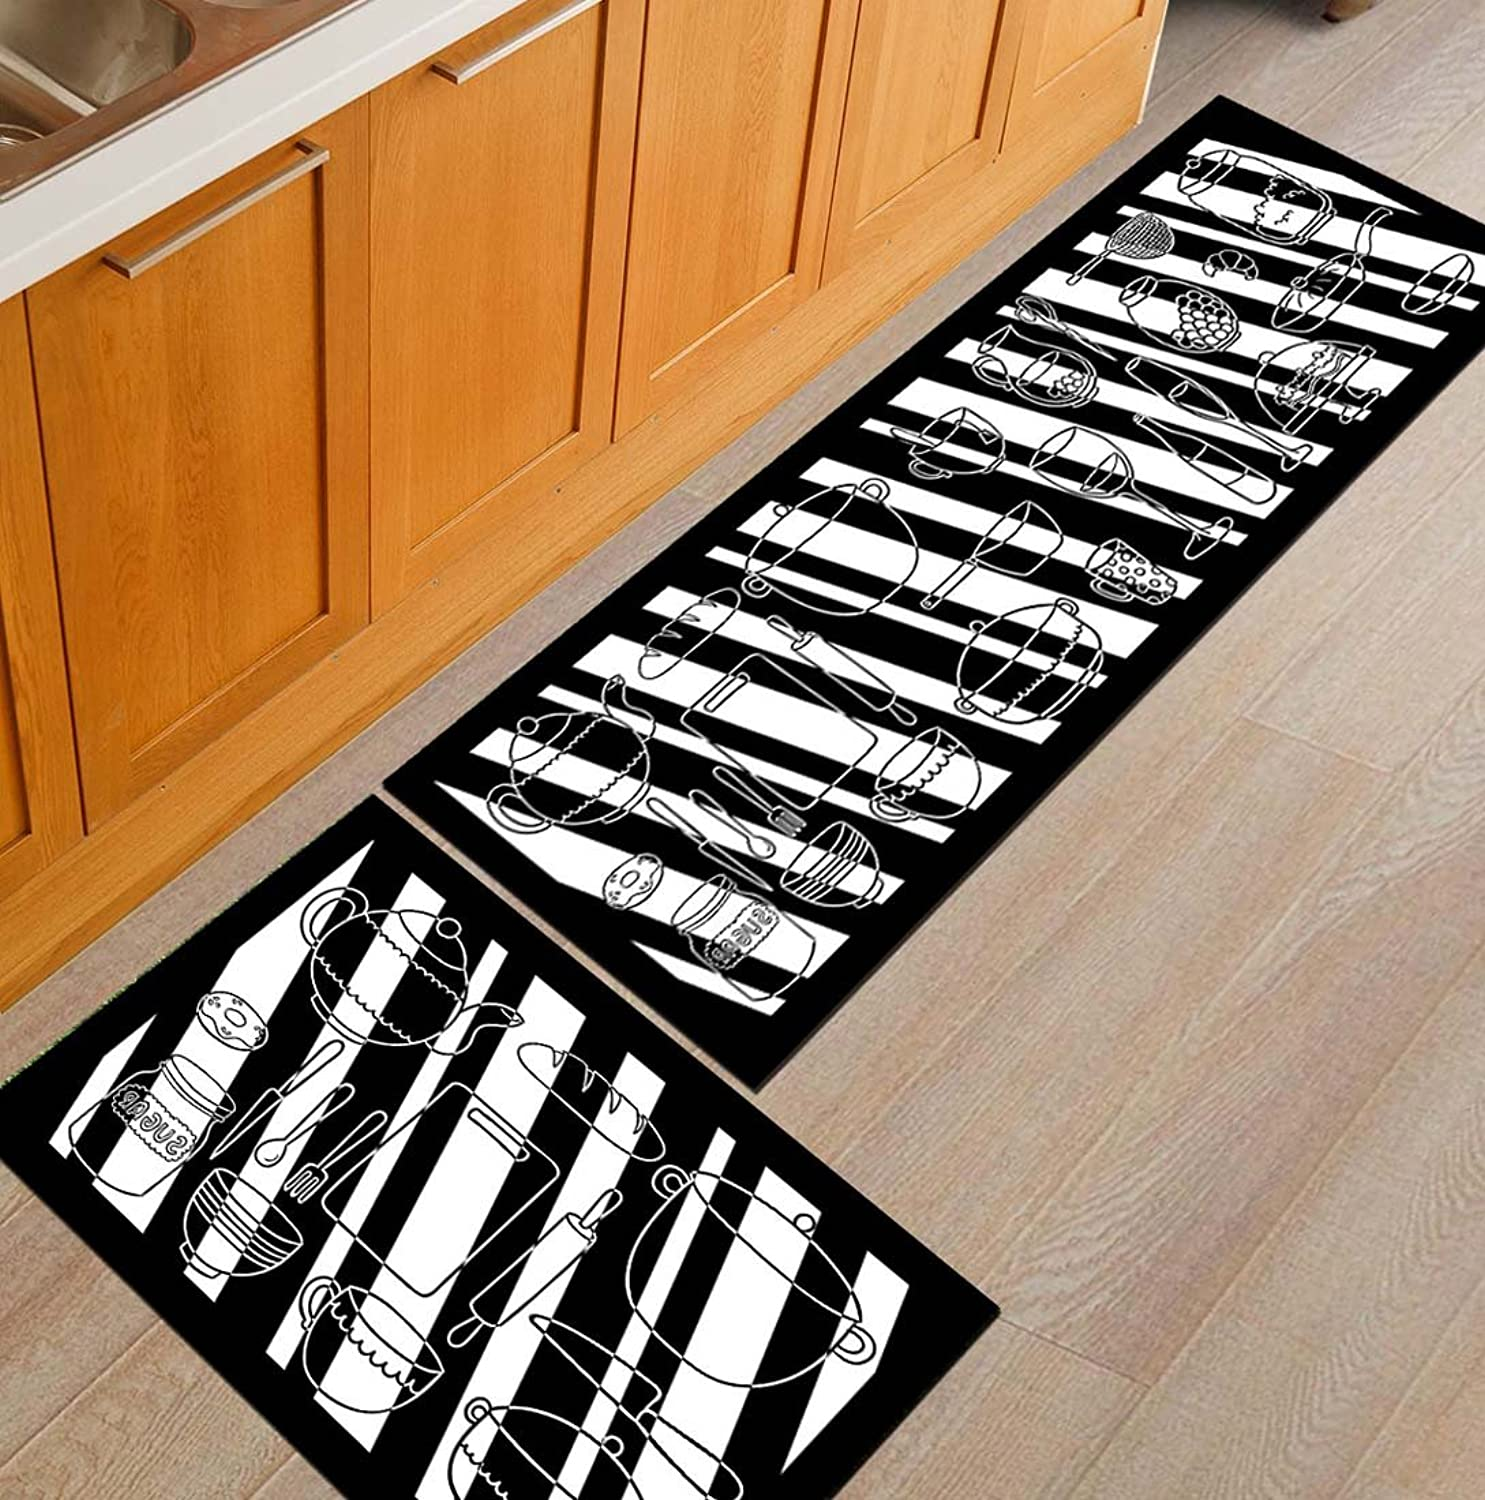 Indoor Outdoor 2PCS Doormat Entrance Welcome Mat Absorbent Runner Inserts Non Slip Entry Rug Funny Black and White Kitchenware, Home Decor Inside shoes Scraper Floor Carpet 19 x31  19 x62